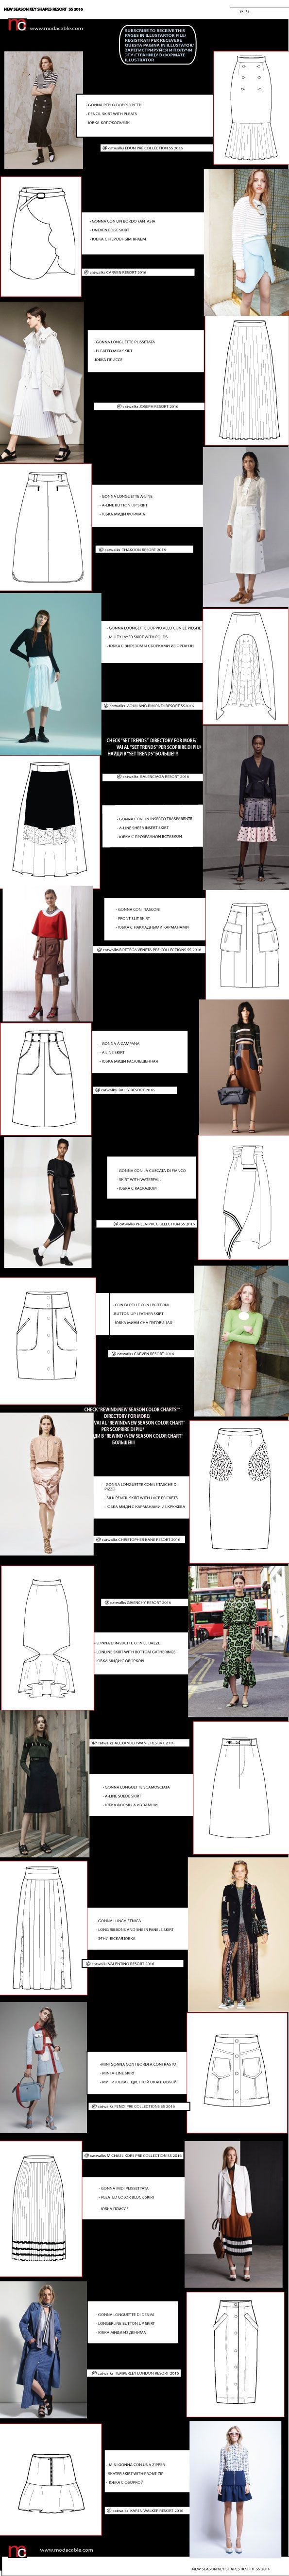 Key Skirt Shapes seen at the SS 2016 Resort Collections - PopUp ModaCable.com #2016trends...x